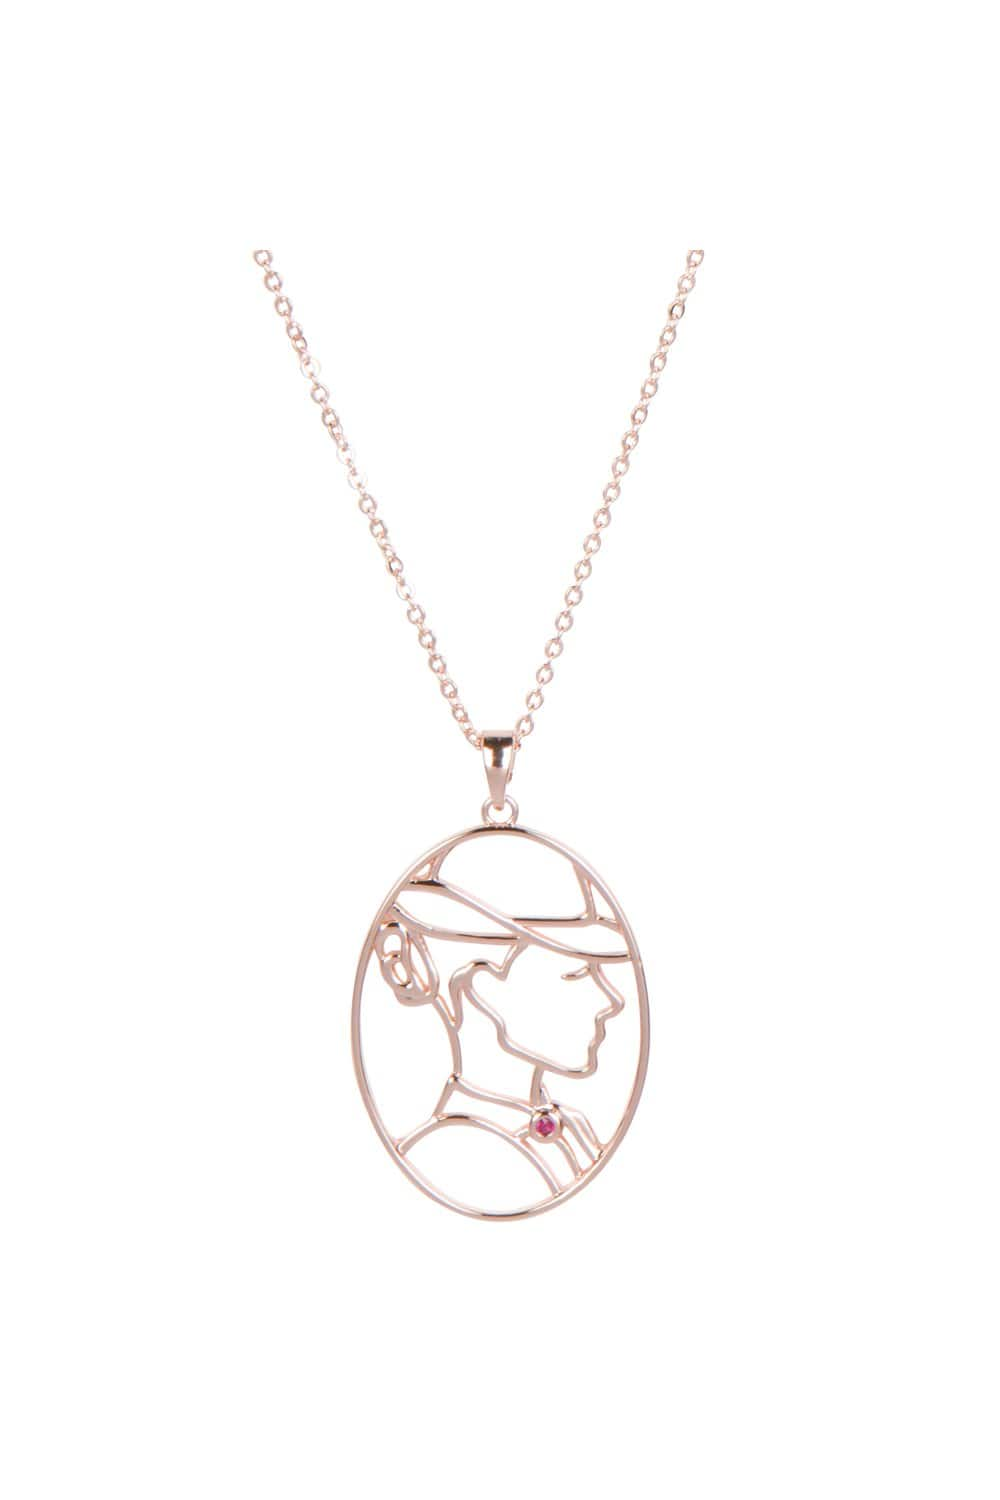 Eva Franco Necklace Lady Portrait Rose Gold Necklace